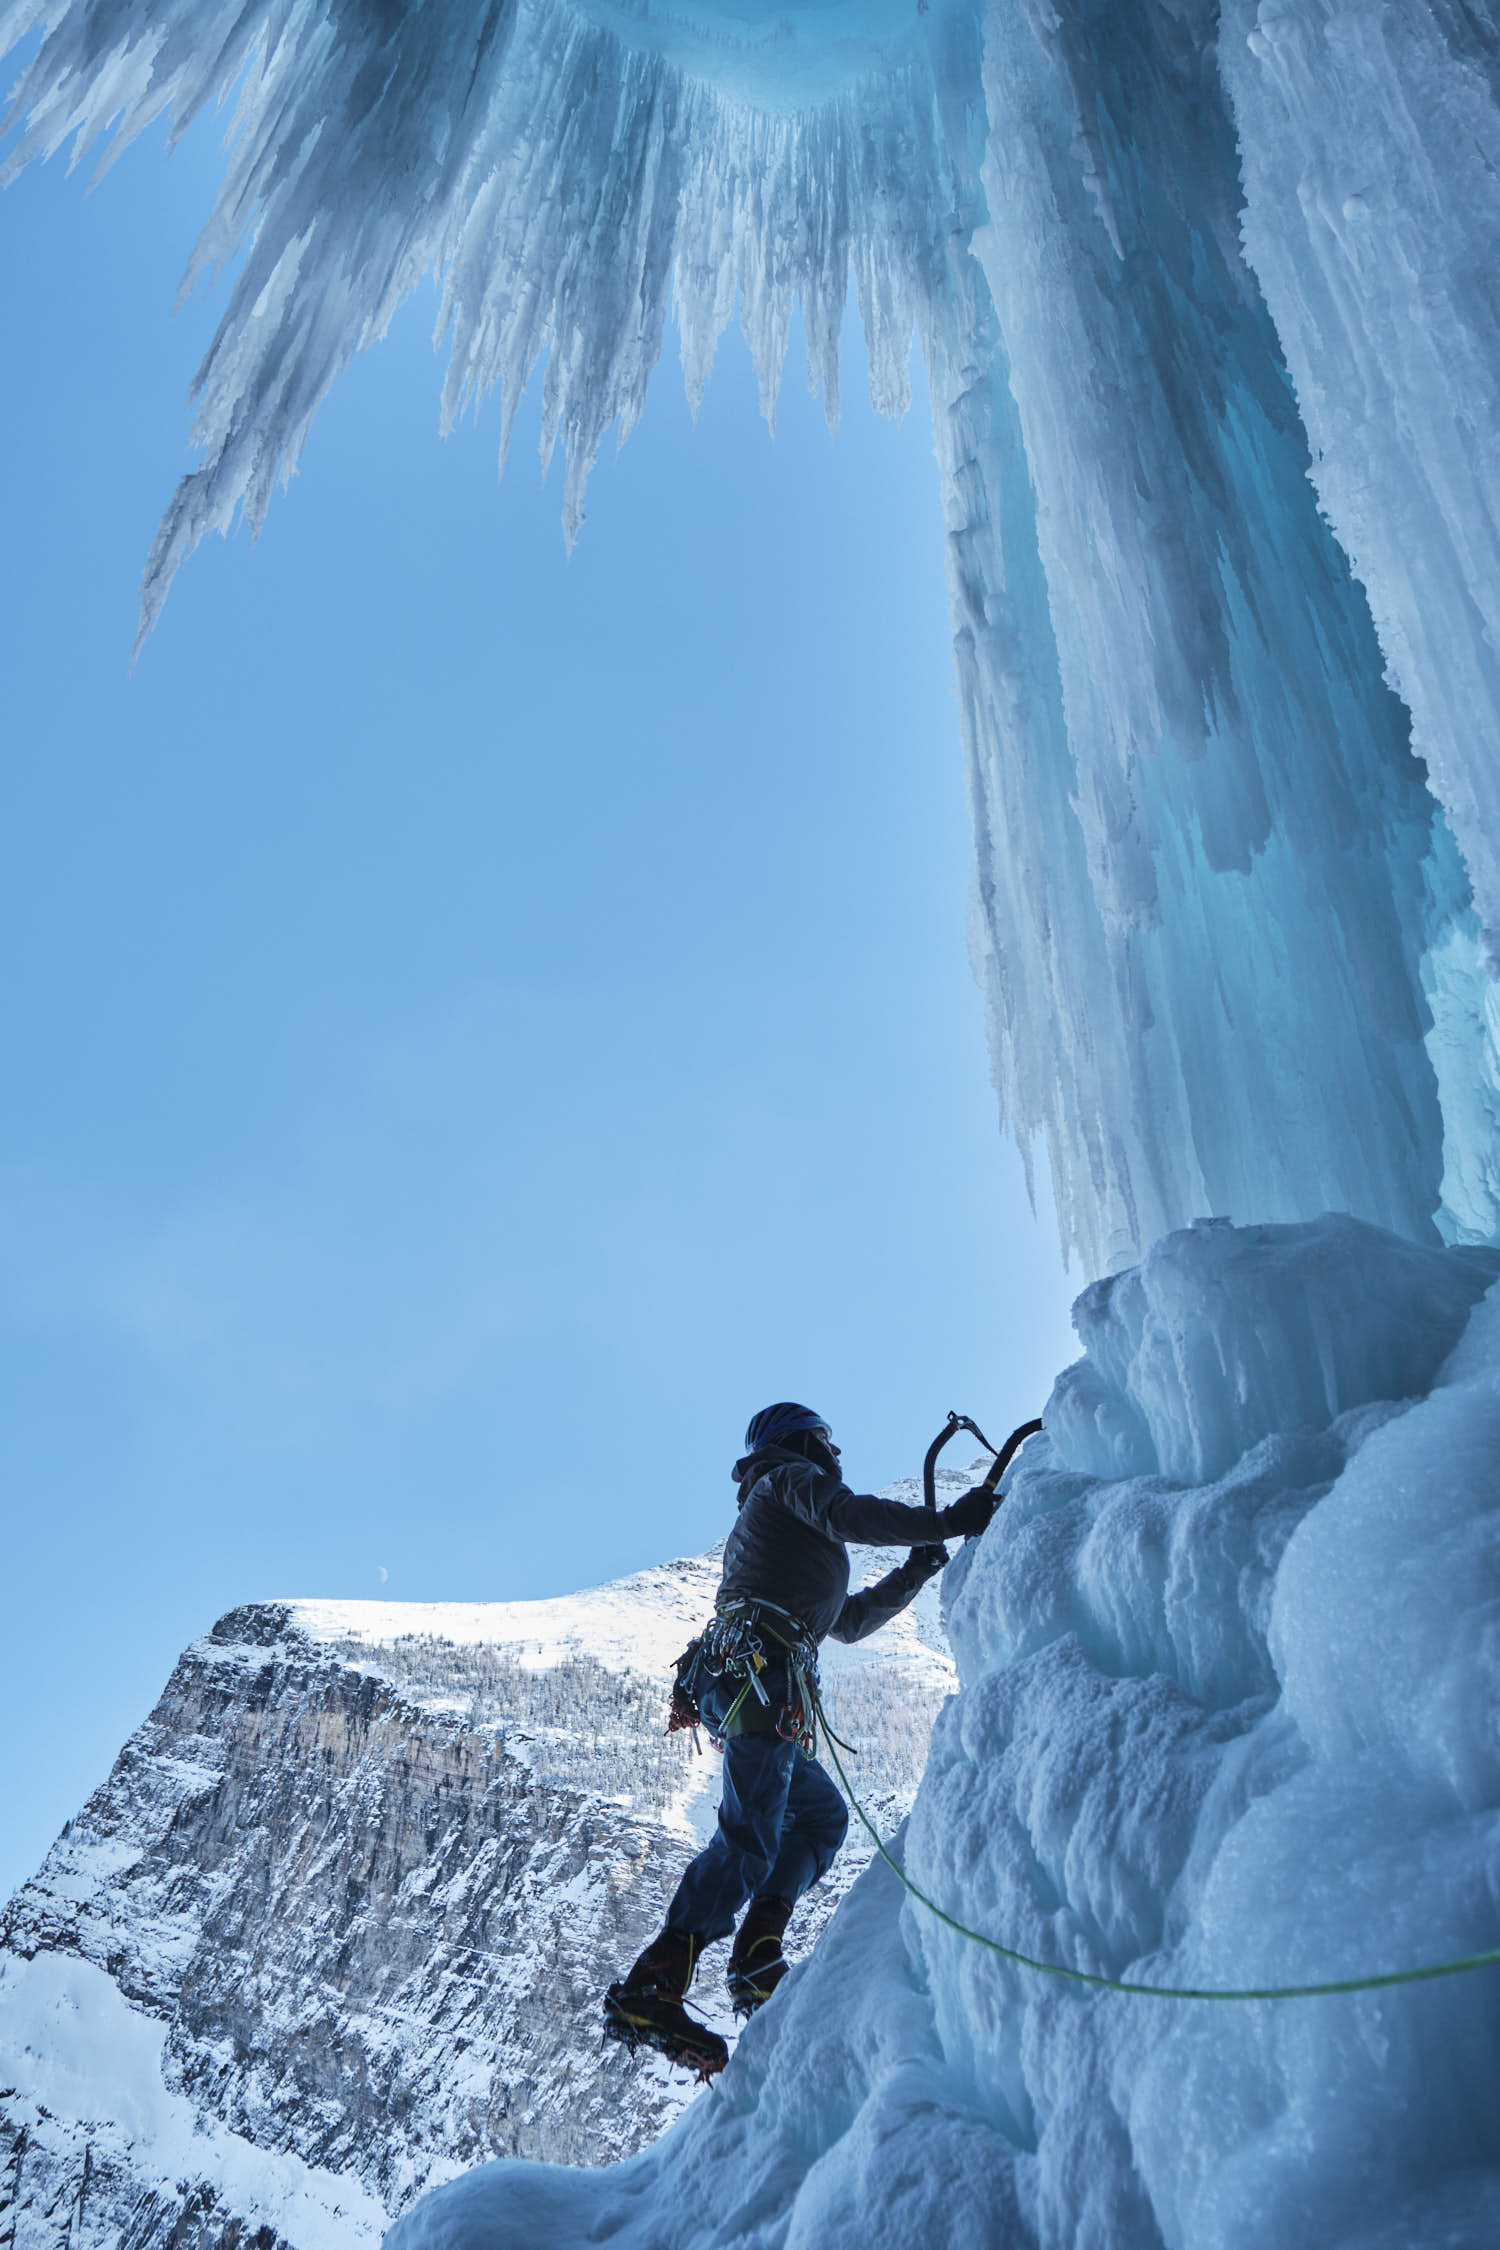 A person ice climbing a frozen water fall.